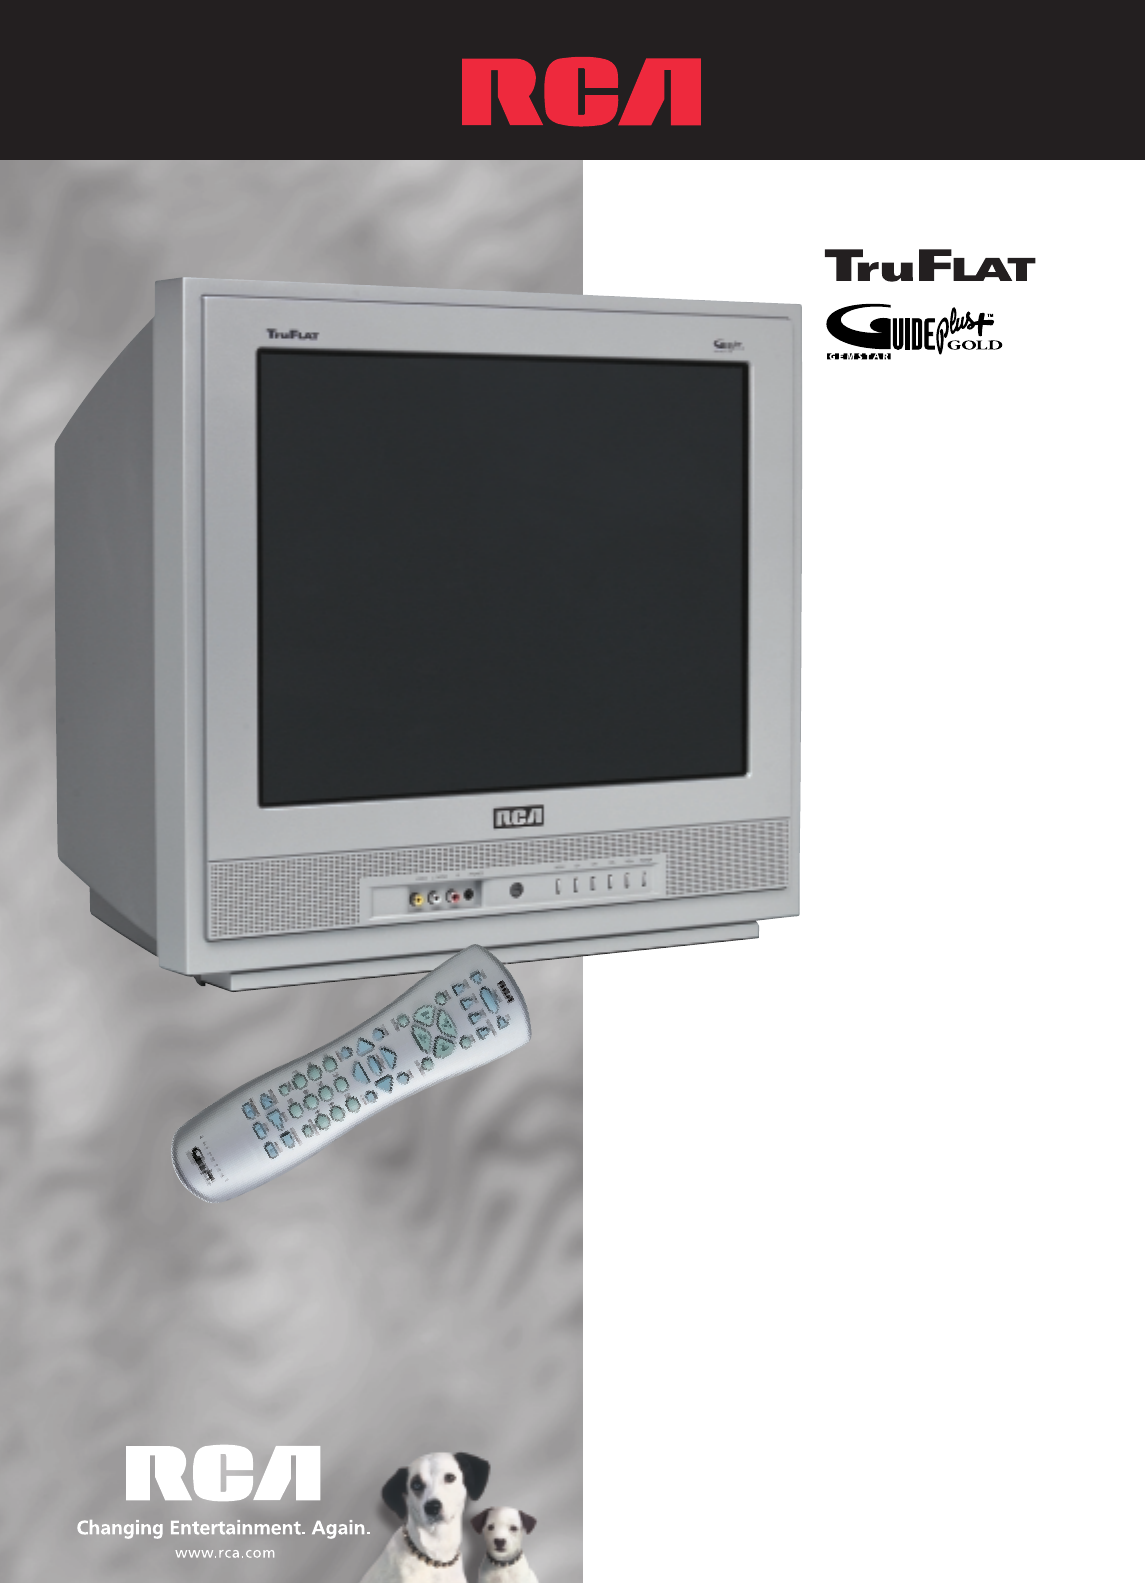 rca crt television f20tf10 user guide manualsonline com rh tv manualsonline com RCA TV Manuals RCA TruFlat TV Lock